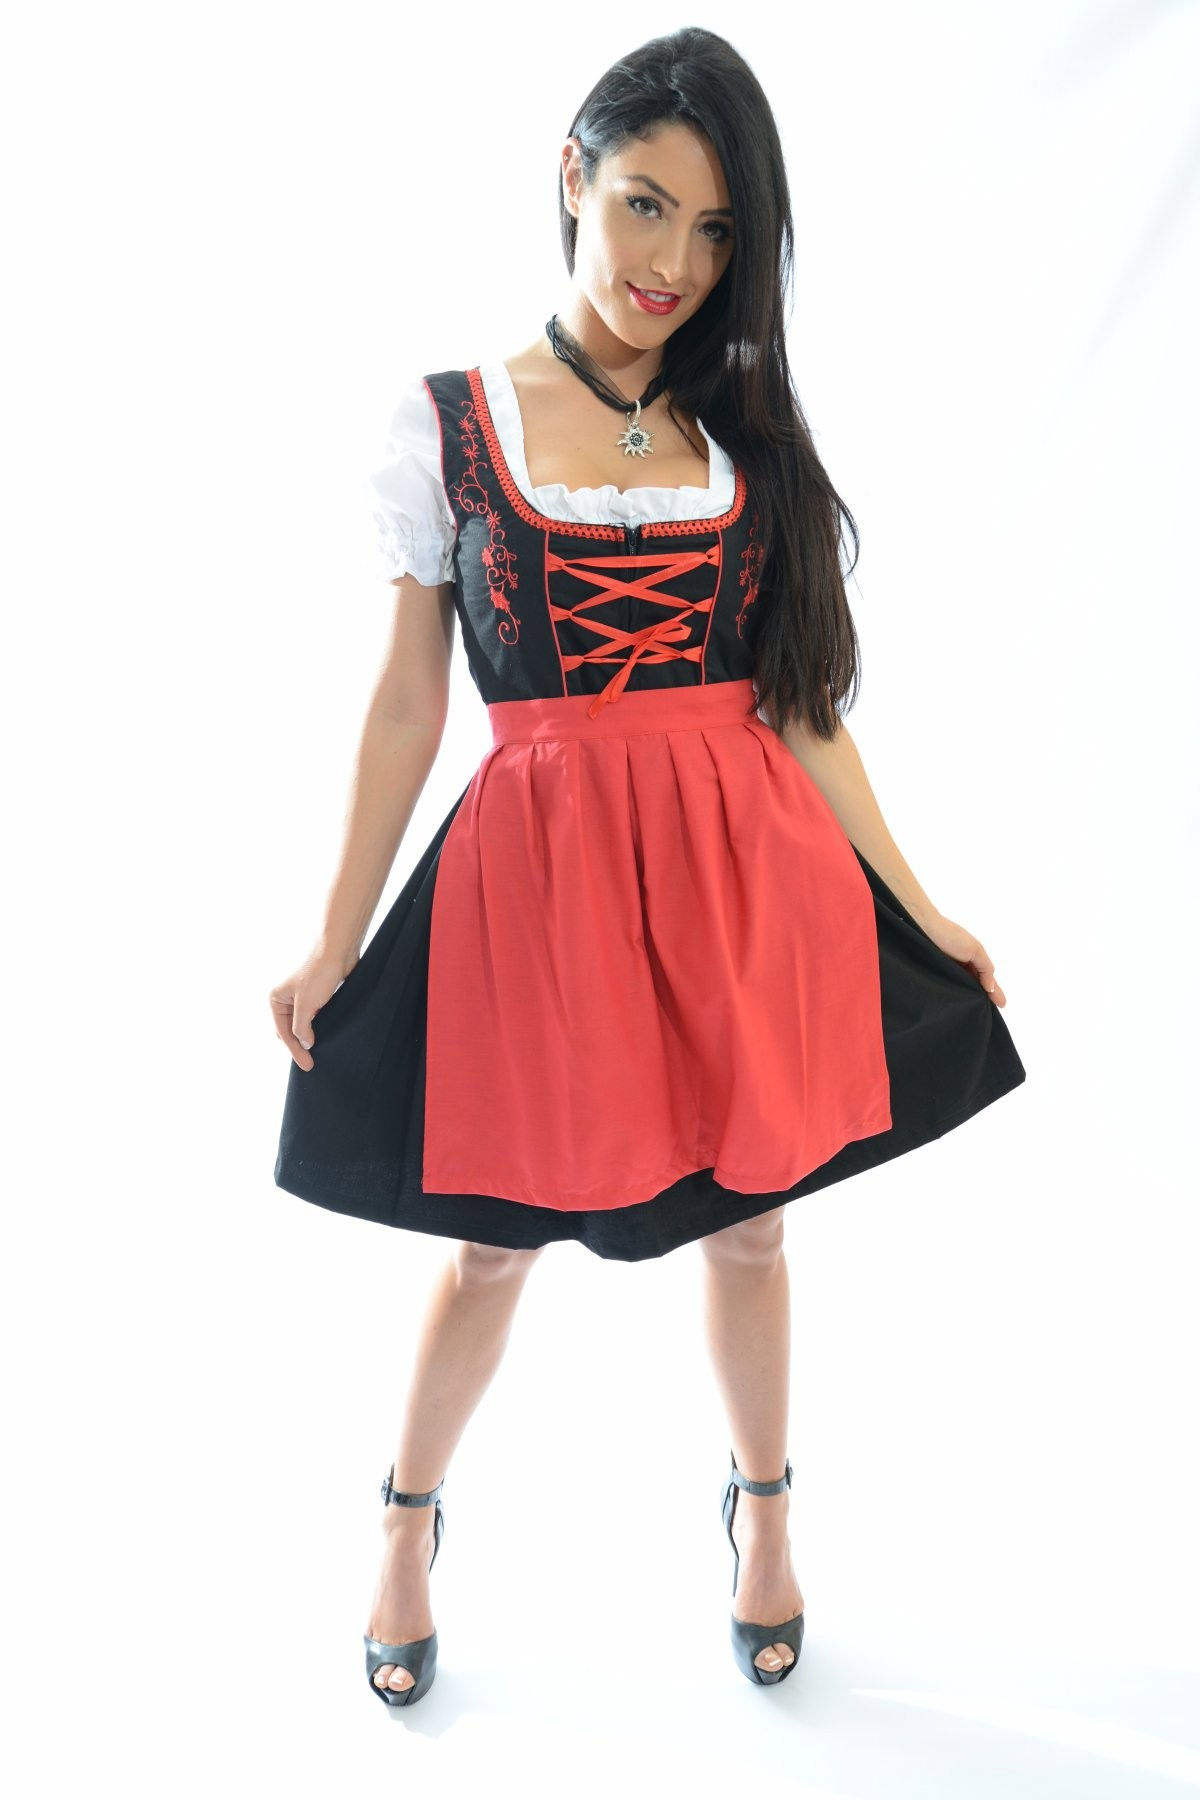 Dirndl Heidi | Dirndl dress | Dirndls